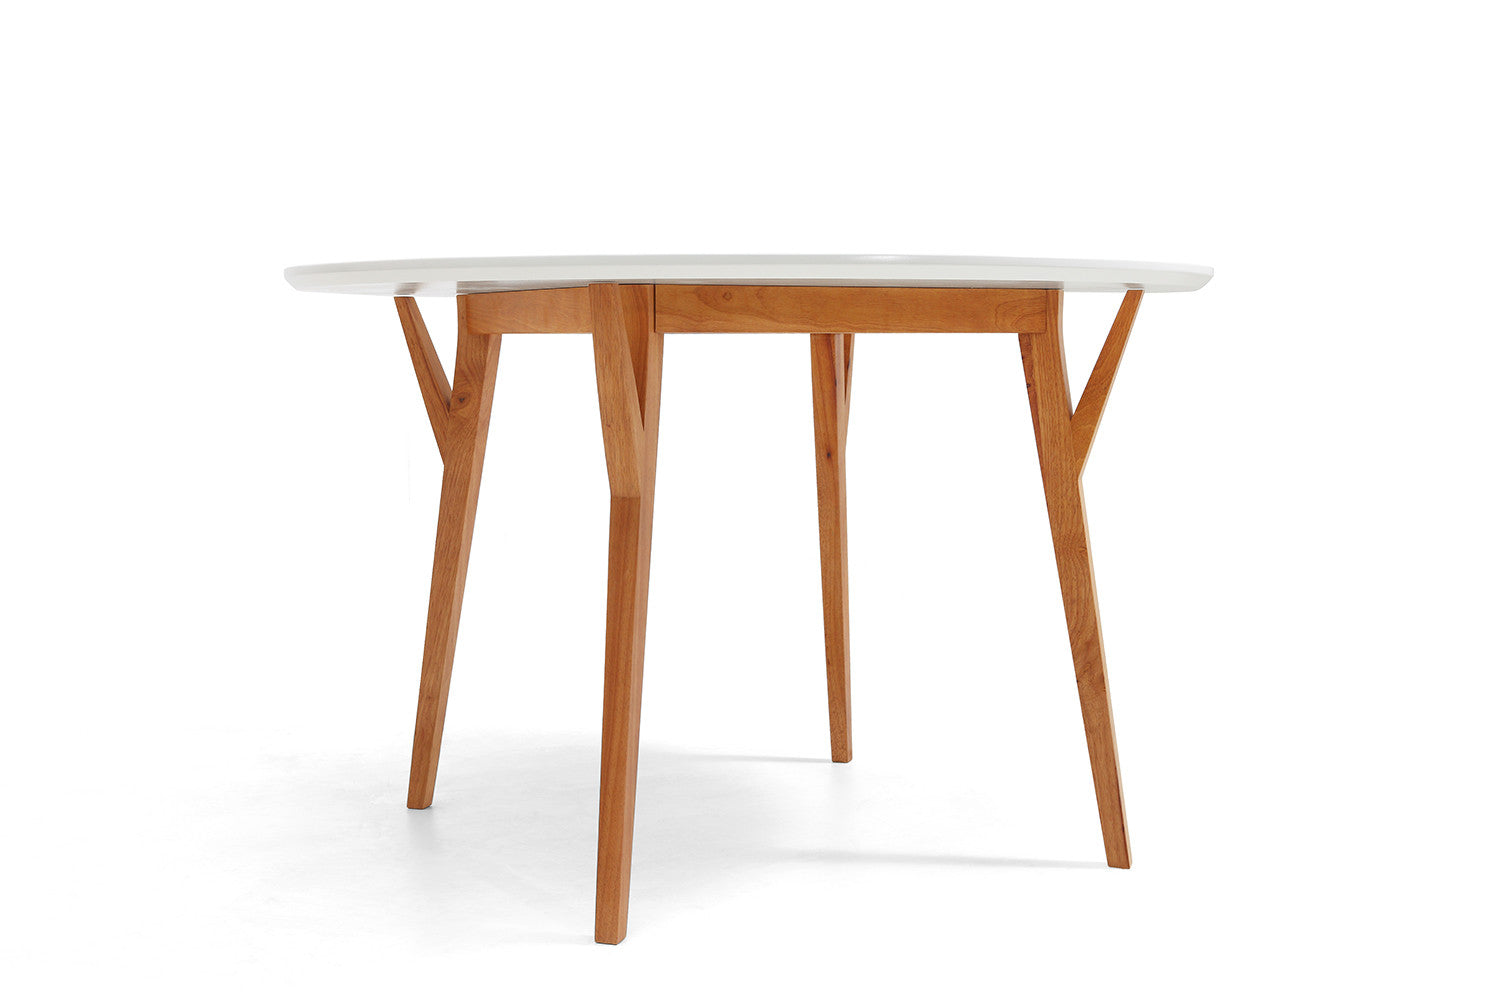 Table de salle manger ronde design scandinave moesa for Table salle a manger yvrai